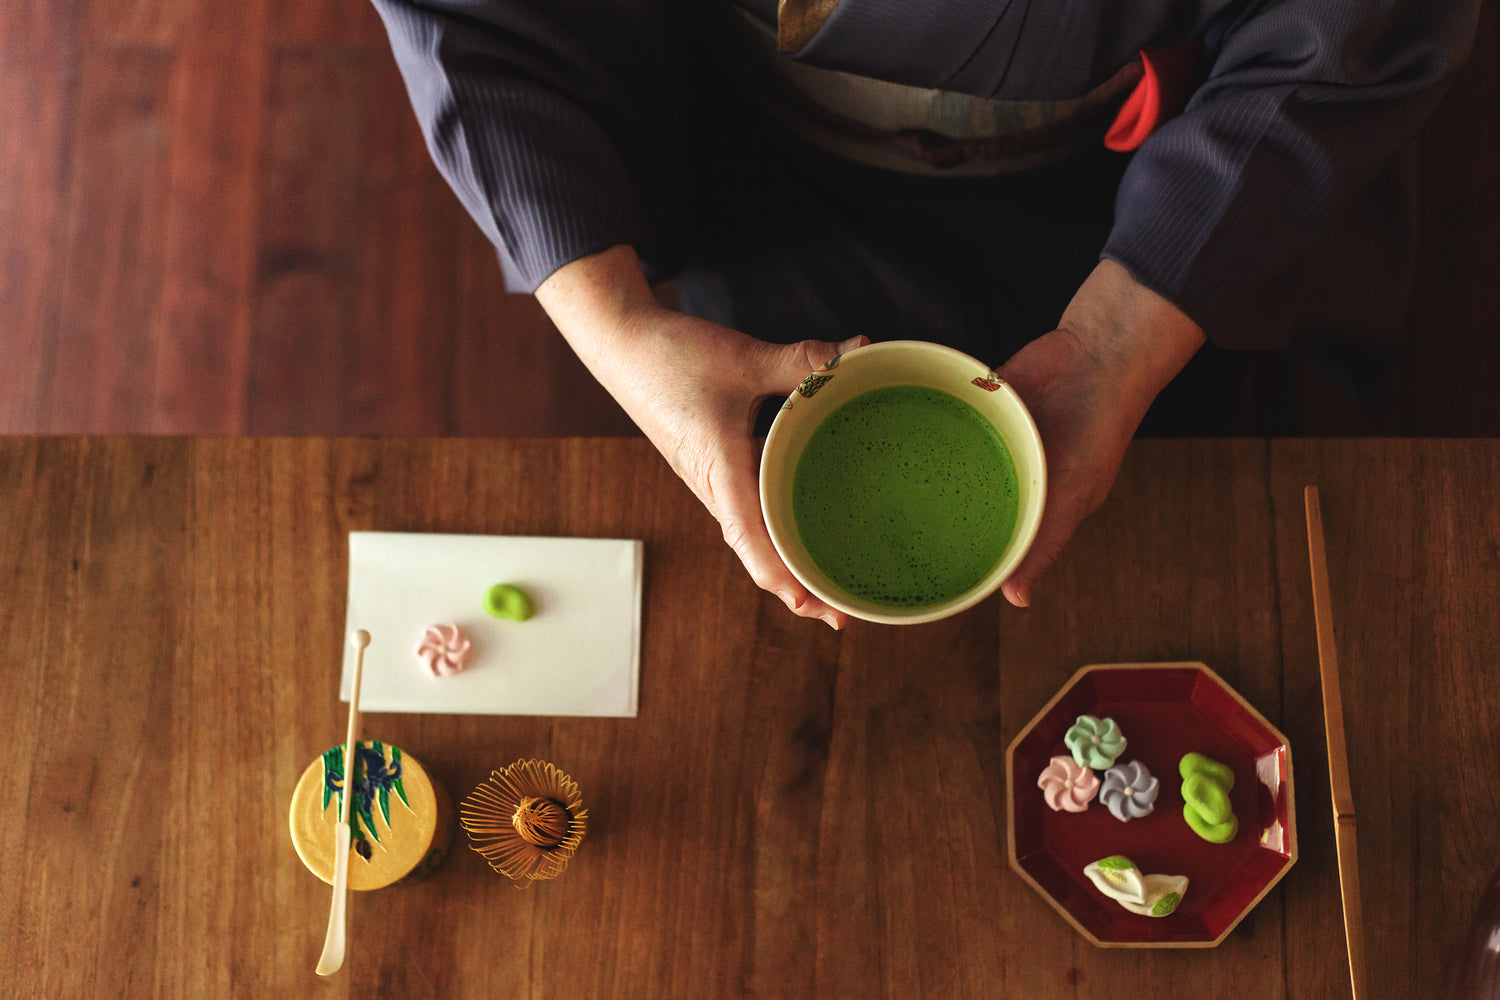 Bokksu Trends: The Tranquility of Tea Ceremony